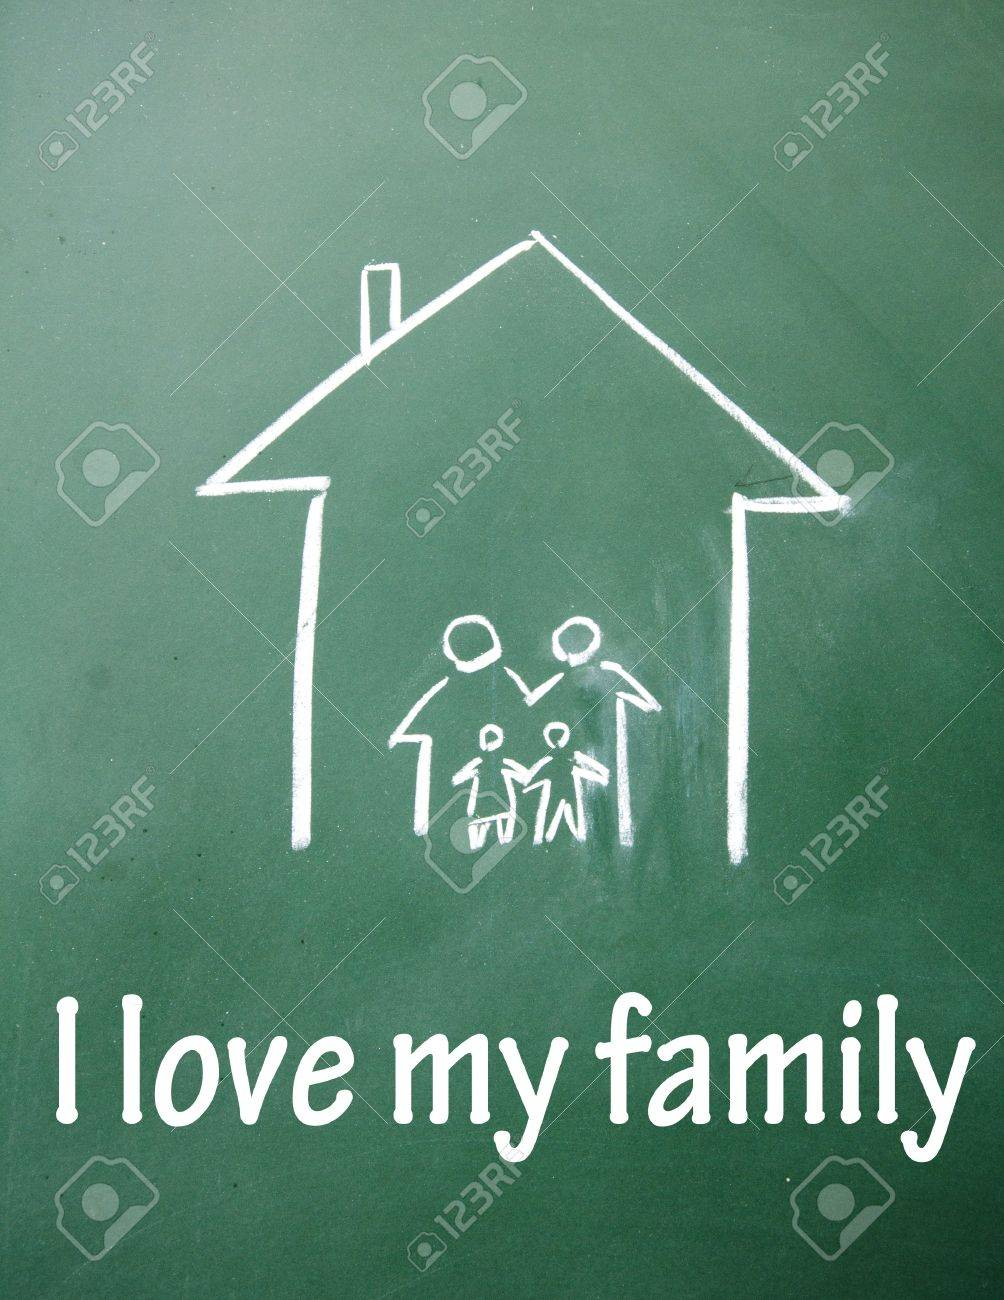 I love my family symbol stock photo picture and royalty free image i love my family symbol stock photo 14922451 buycottarizona Image collections